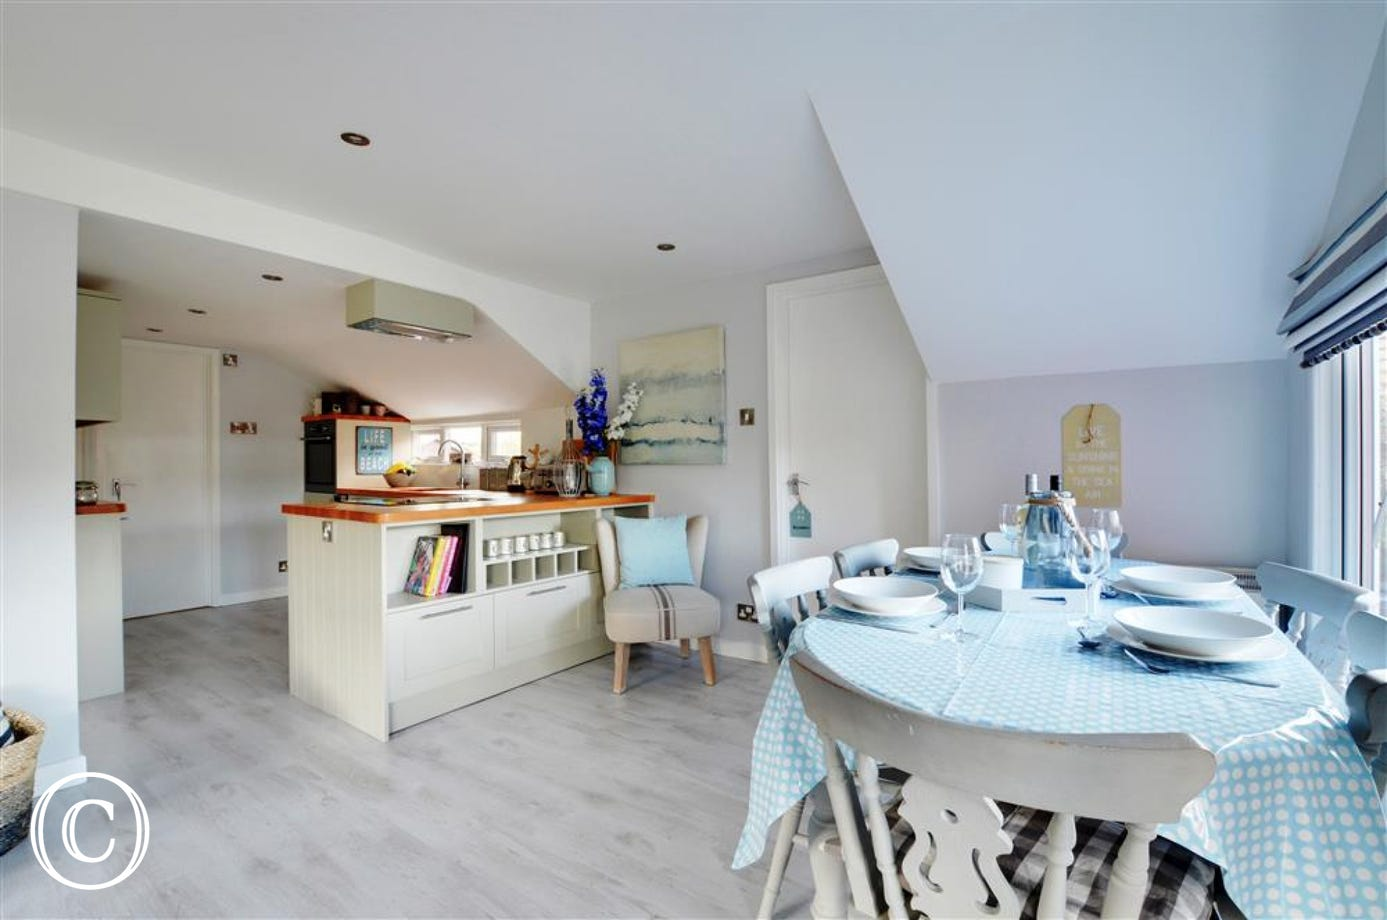 Lovely dining area and open plan kitchen